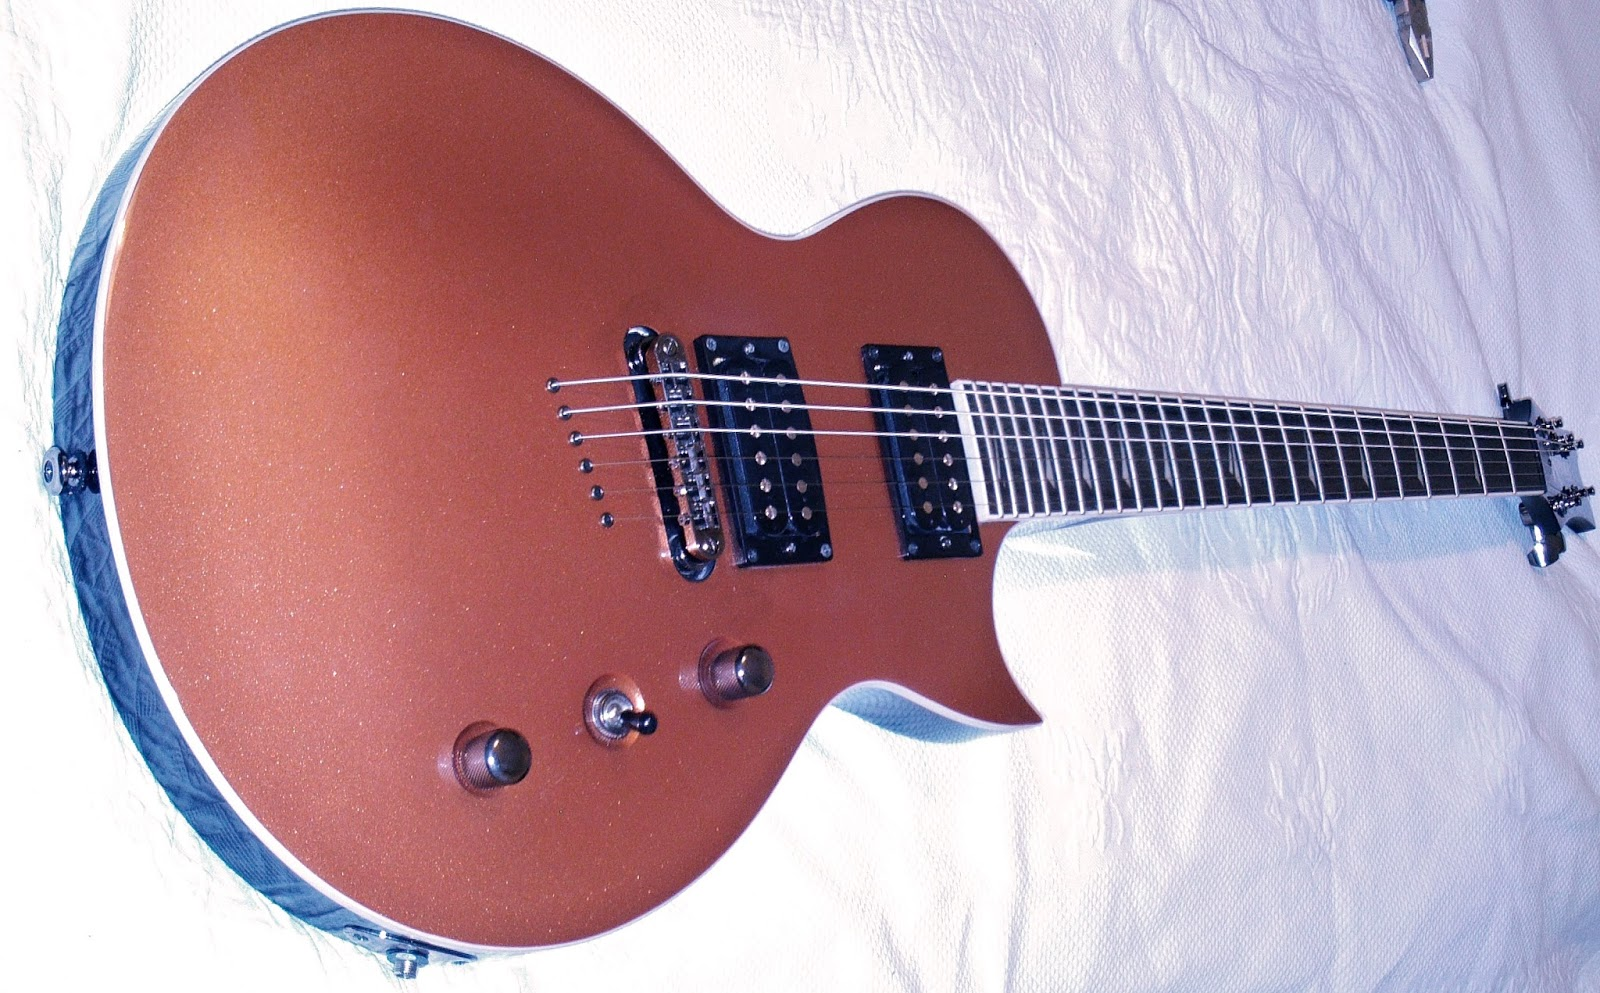 Kramer Assault 220 Copper Top Guitar Dreamer Pacer Custom Wiring Diagram The Older Ceramic Pickups Sounded Hotter And Modern Just Like A Set Of Esp Lh Series I Would Certainly Replace Stock Alnico Along With